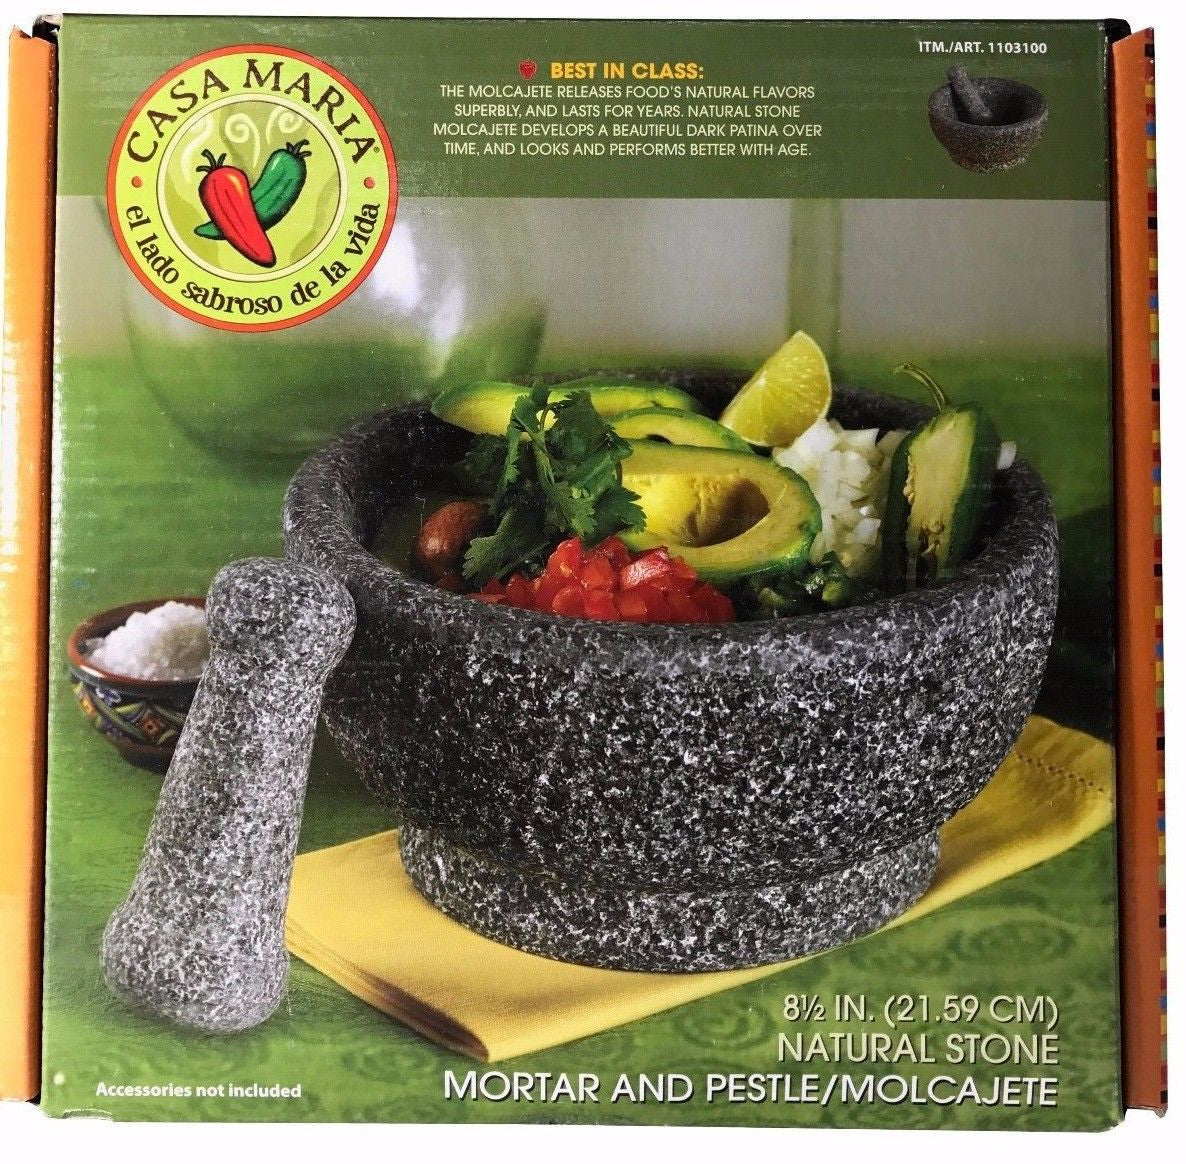 Casa Maria Natural Stone Mortar & Pestle 8.5 in.